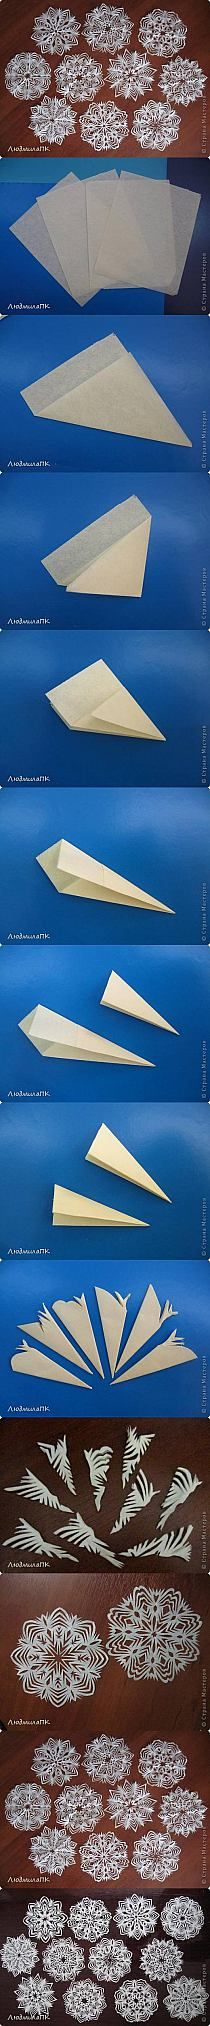 Snowflakes, step-by-step folding and cutting, very nice.  The website warns you about tracking so stay out of it.  The pin is enough!